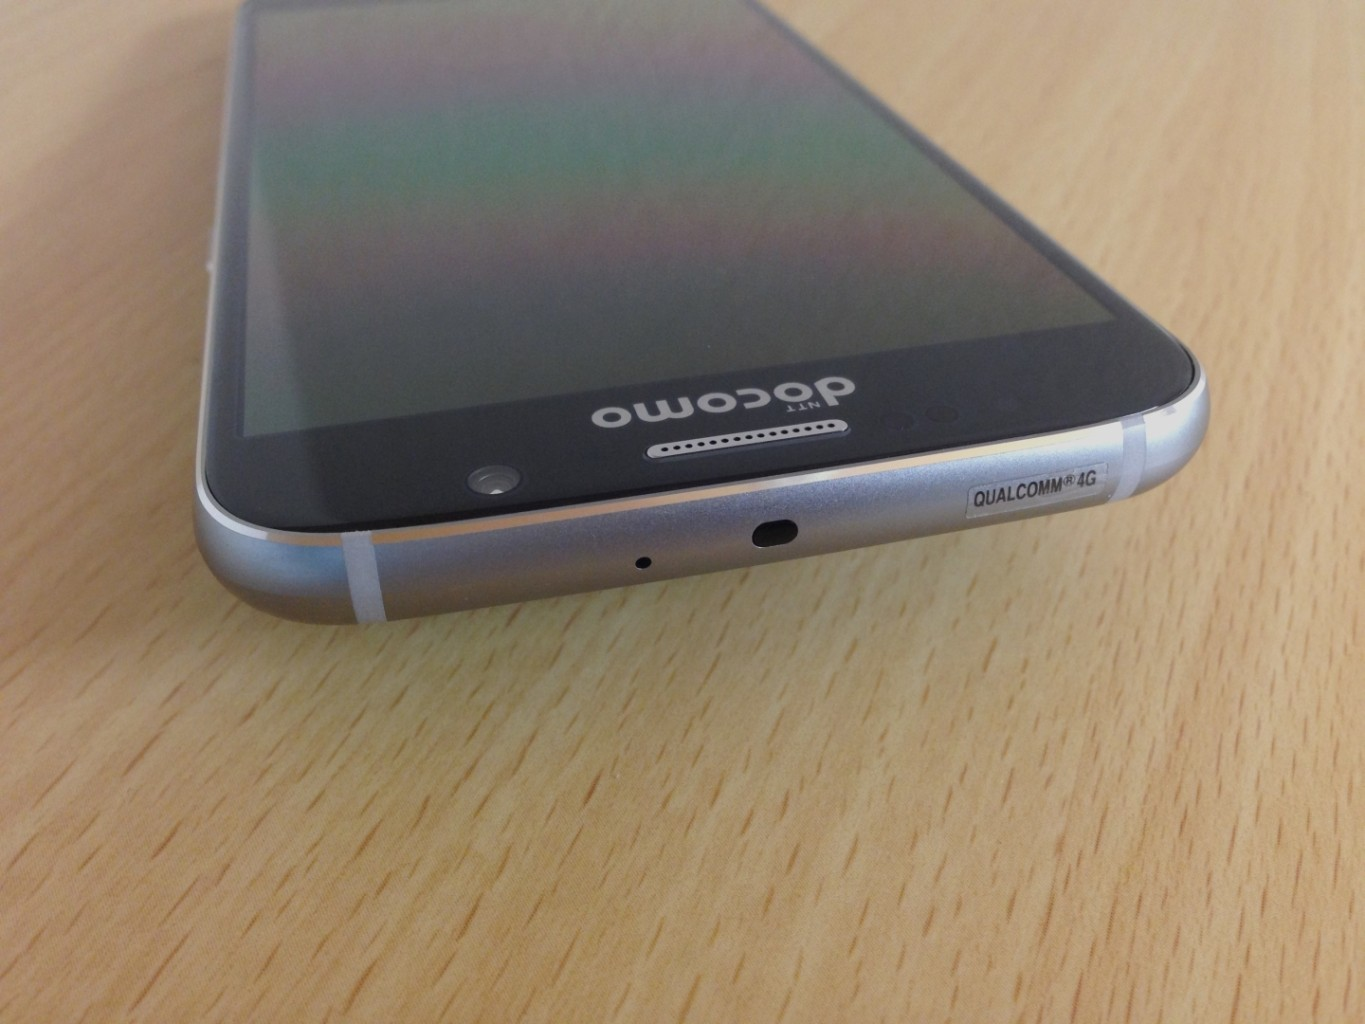 galaxy-s6_sc-05g_unboxing_12